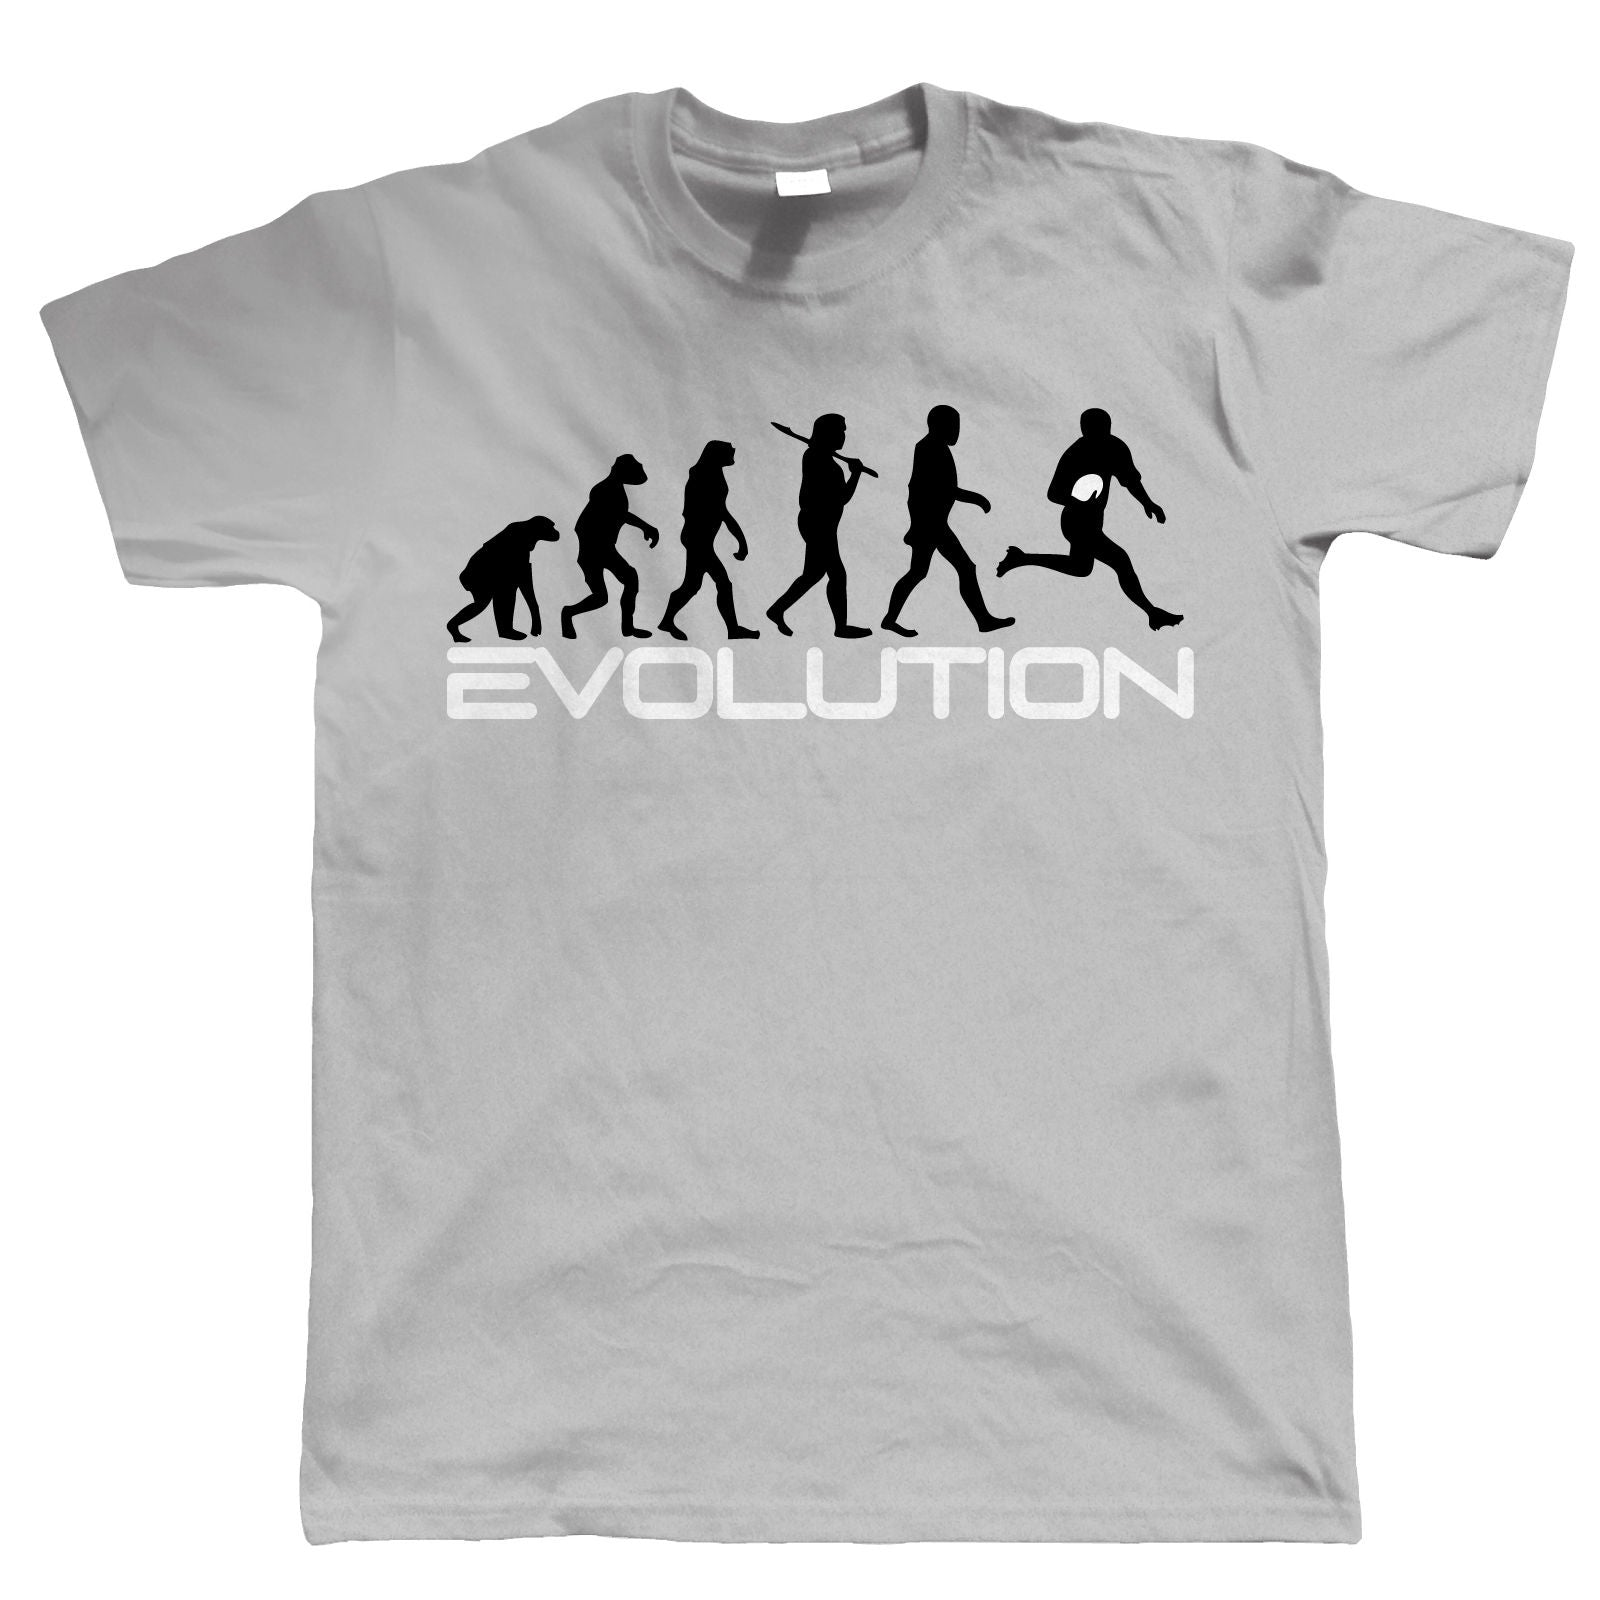 Evolution of Rugby, Mens Funny Sports T Shirt